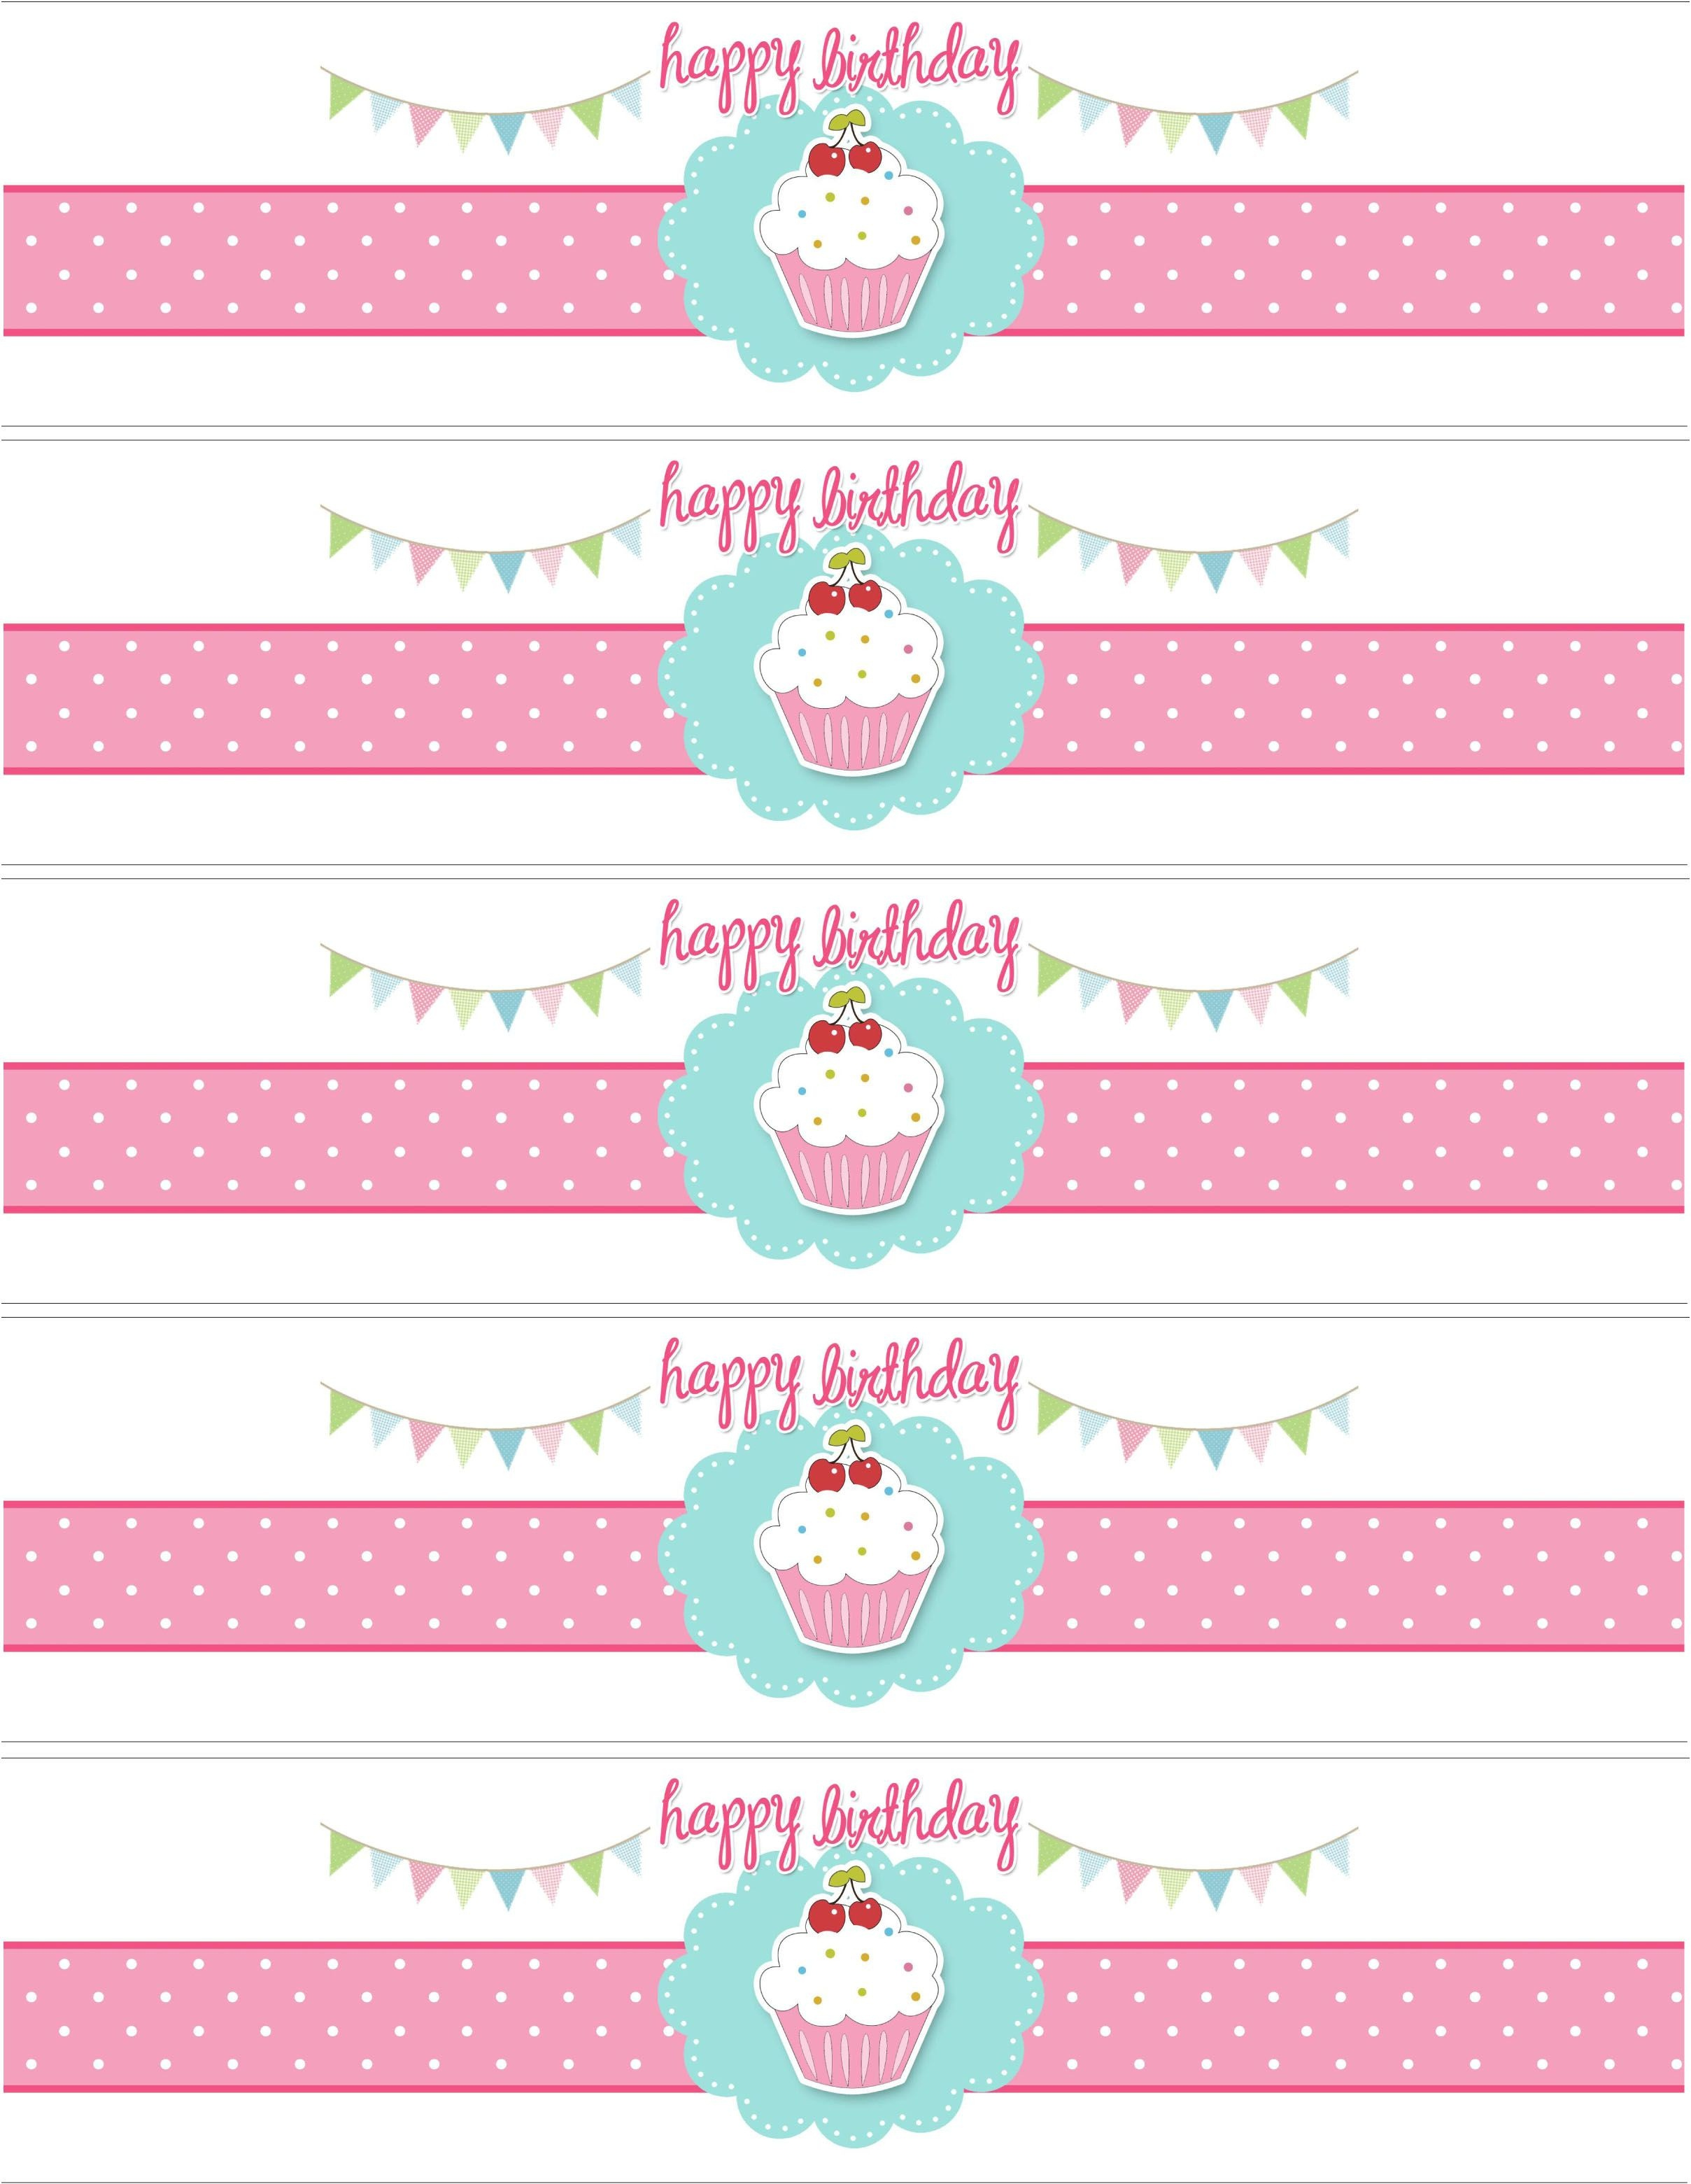 Cupcake Birthday Party With Free Printables | Party Ideas - Free Printable Water Bottle Label Template